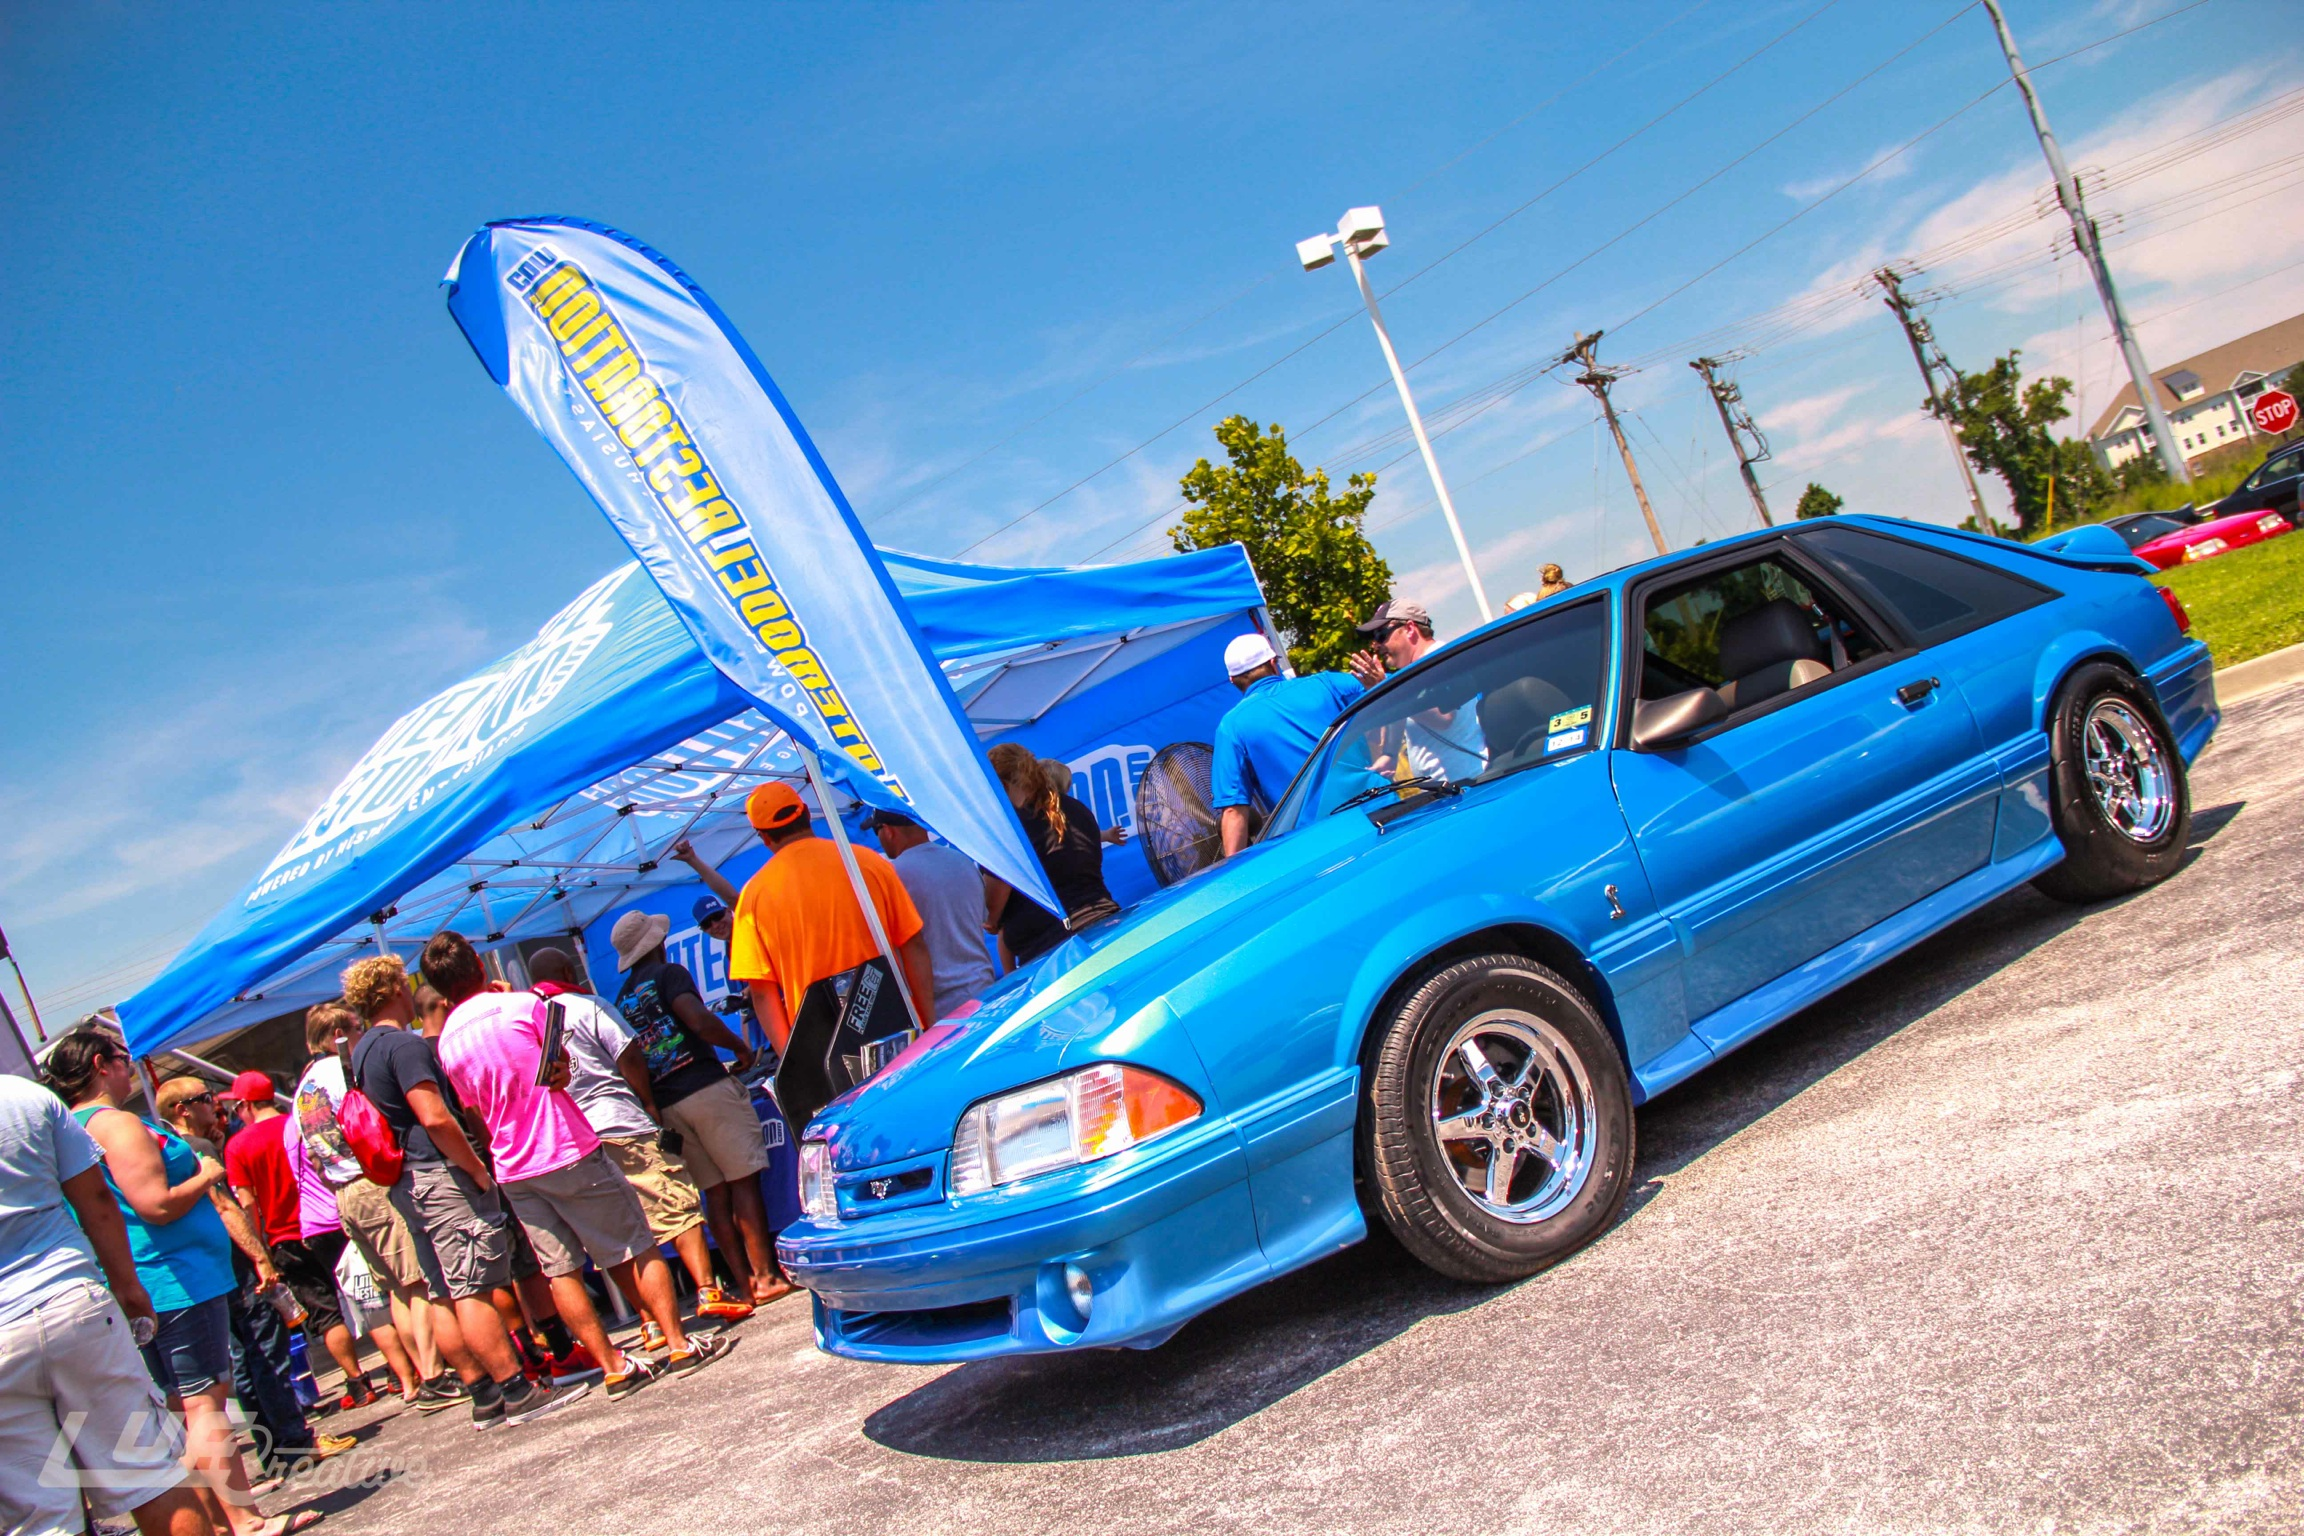 SVE Pace Car & Project Blue Collar Visit Mustang Week - Project Blue Collar - Mustang Week 2014